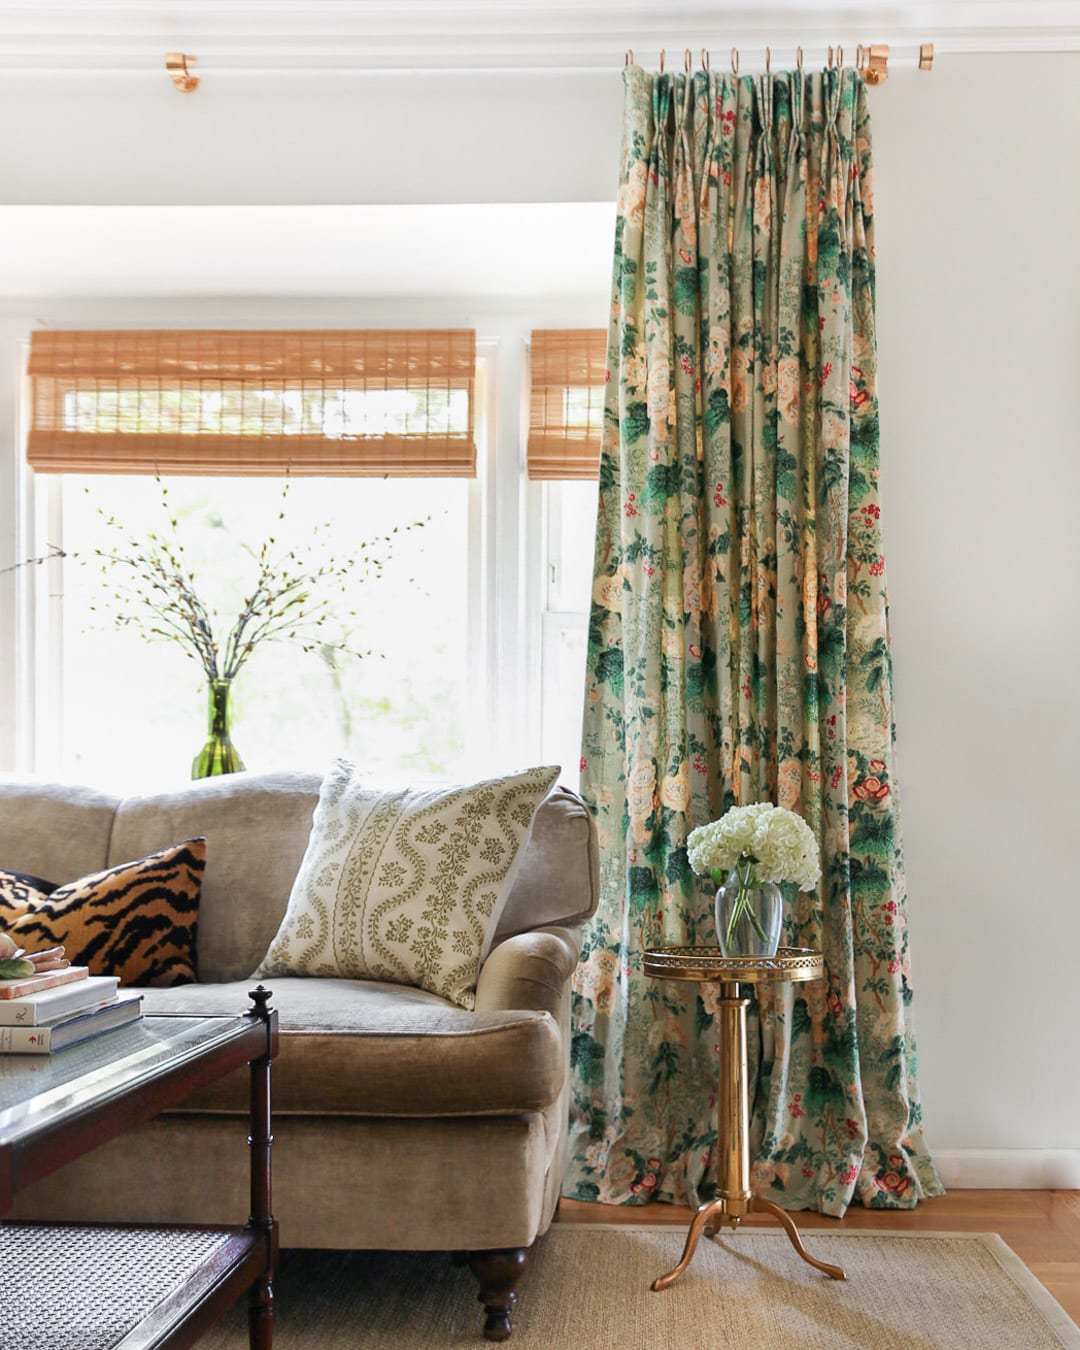 tips for sourcing secondhand drapery